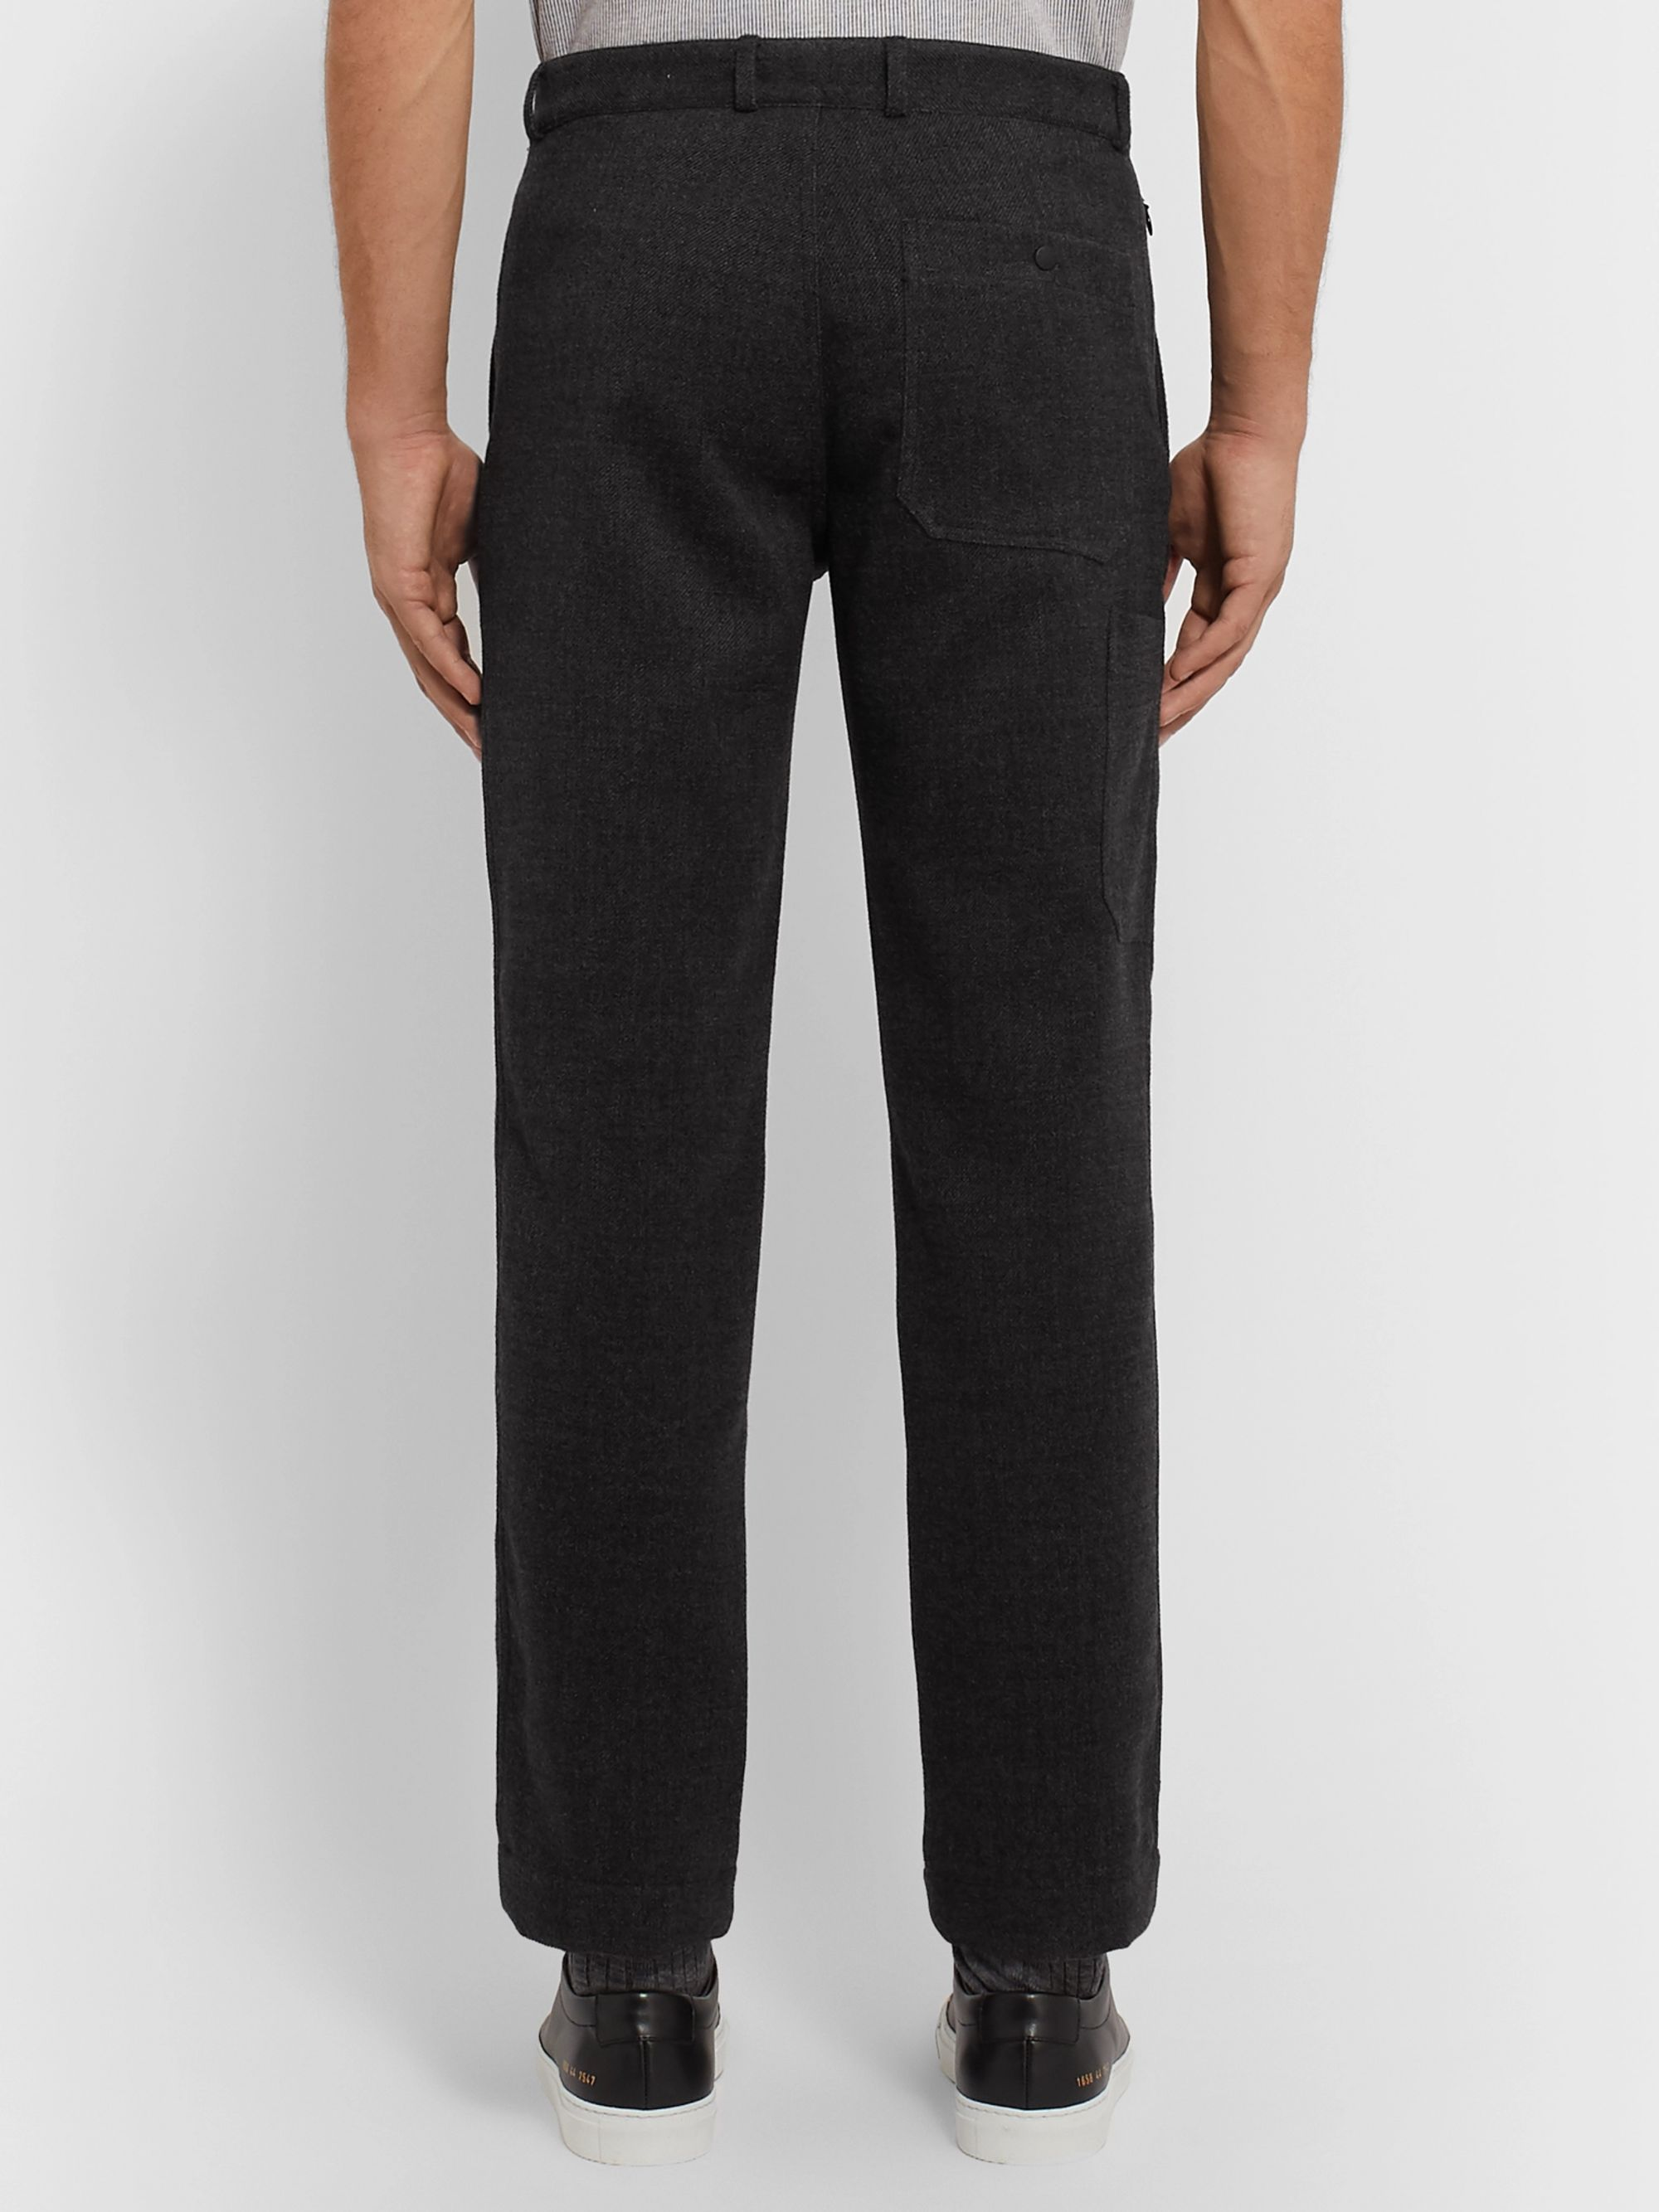 Incotex + nanamica Twill Trousers